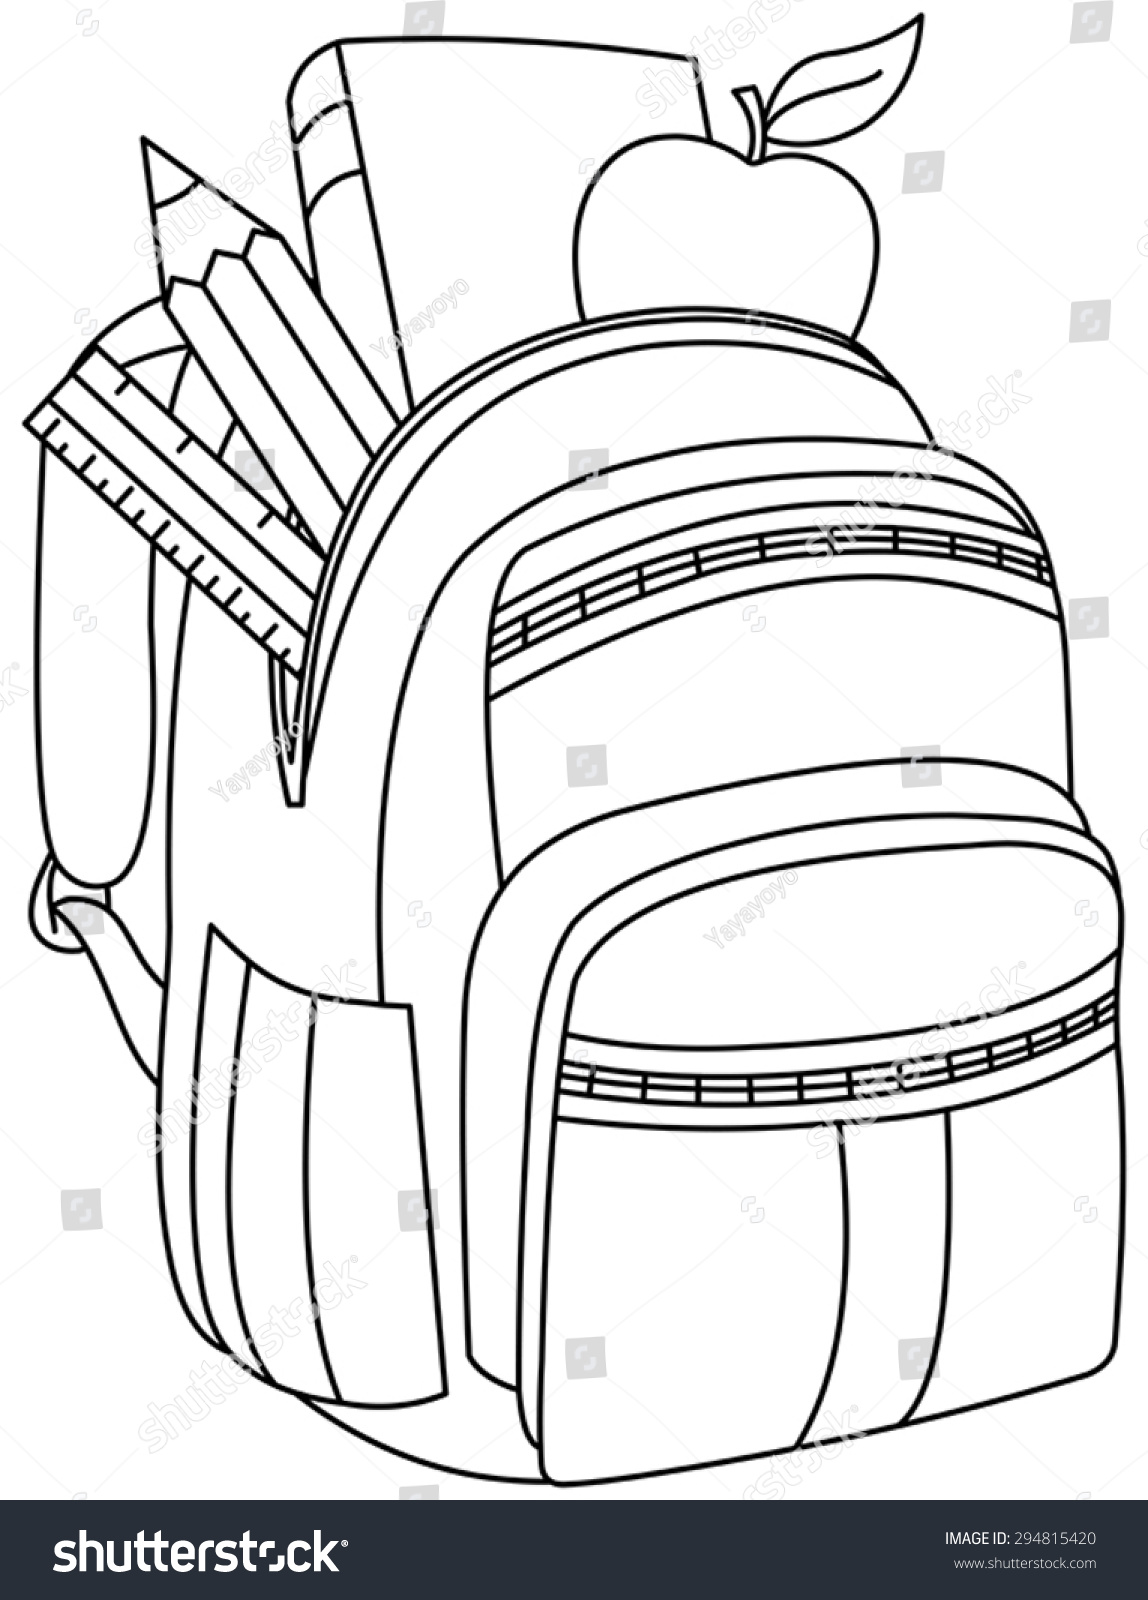 Uncategorized Backpack Coloring Pages coloring book bags bag colouring pages school outlined backpack vector illustration coloring